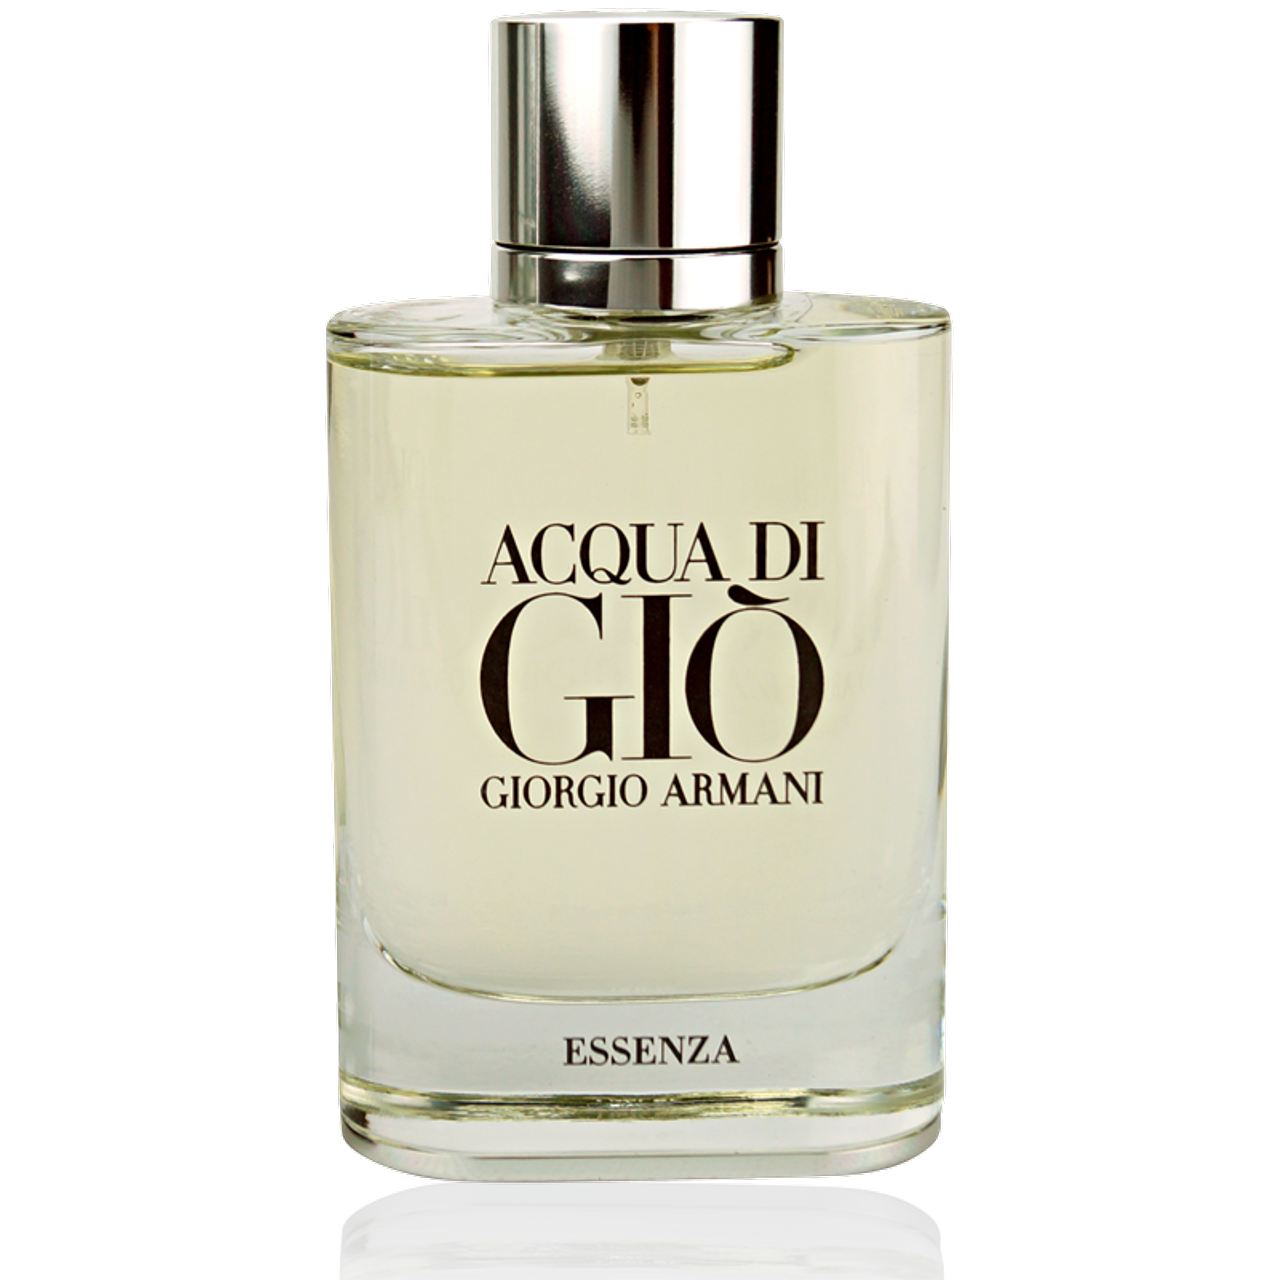 Armani Acqua di Gio Essenza EdP 75ml